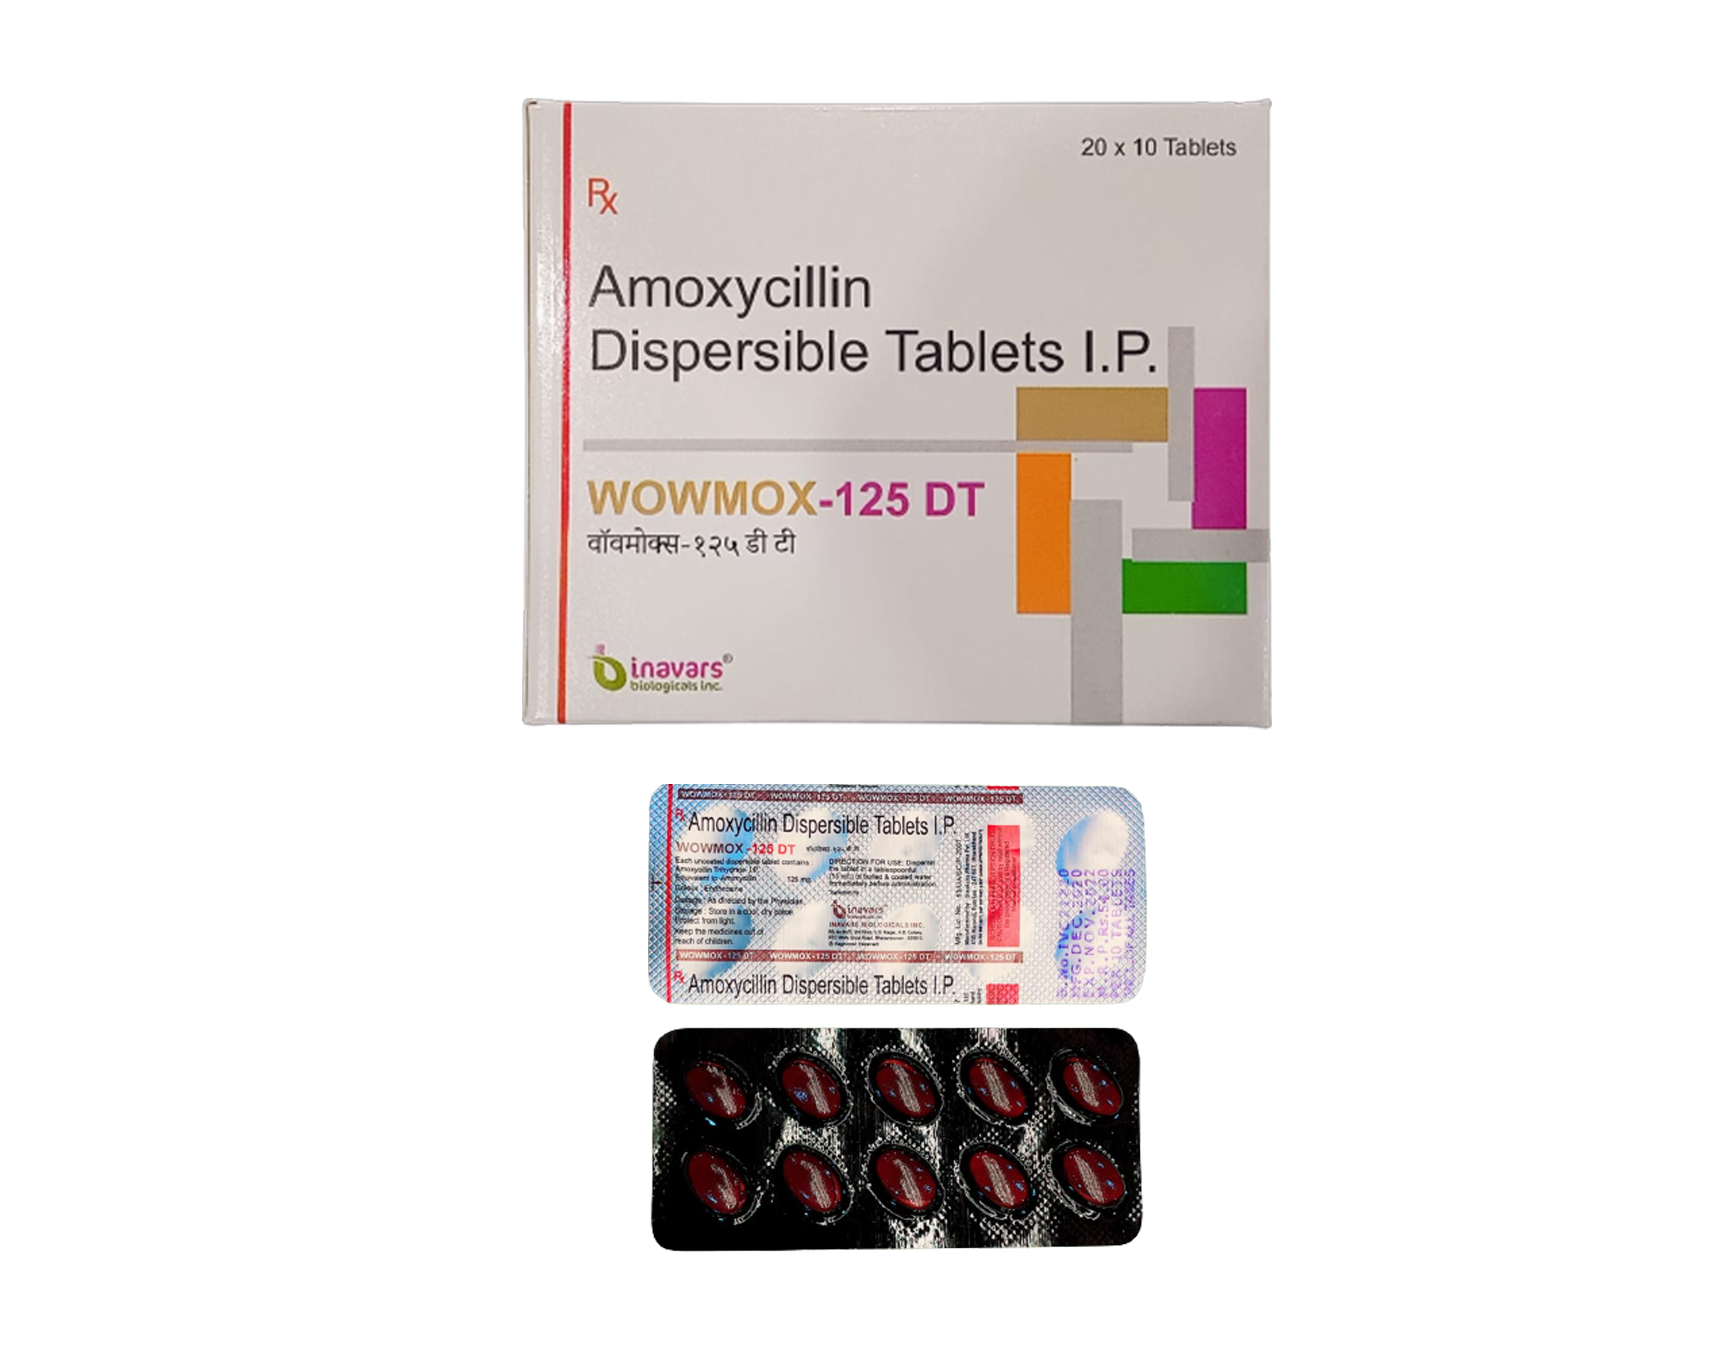 WOWMOX-125 DT From InavarsBiologicalsINC